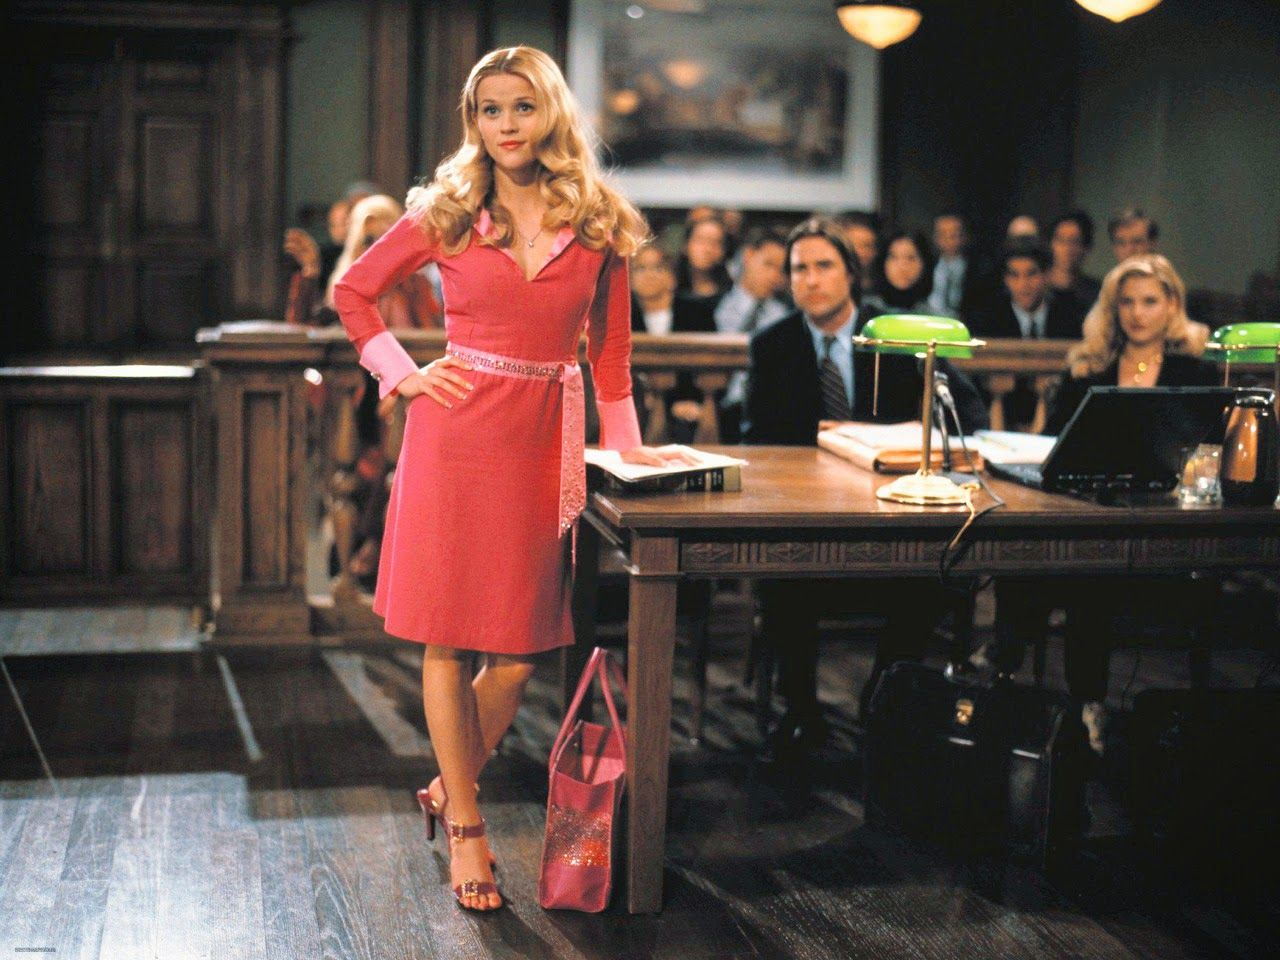 17 Things I Wish I Knew Before I Became a Lawyer